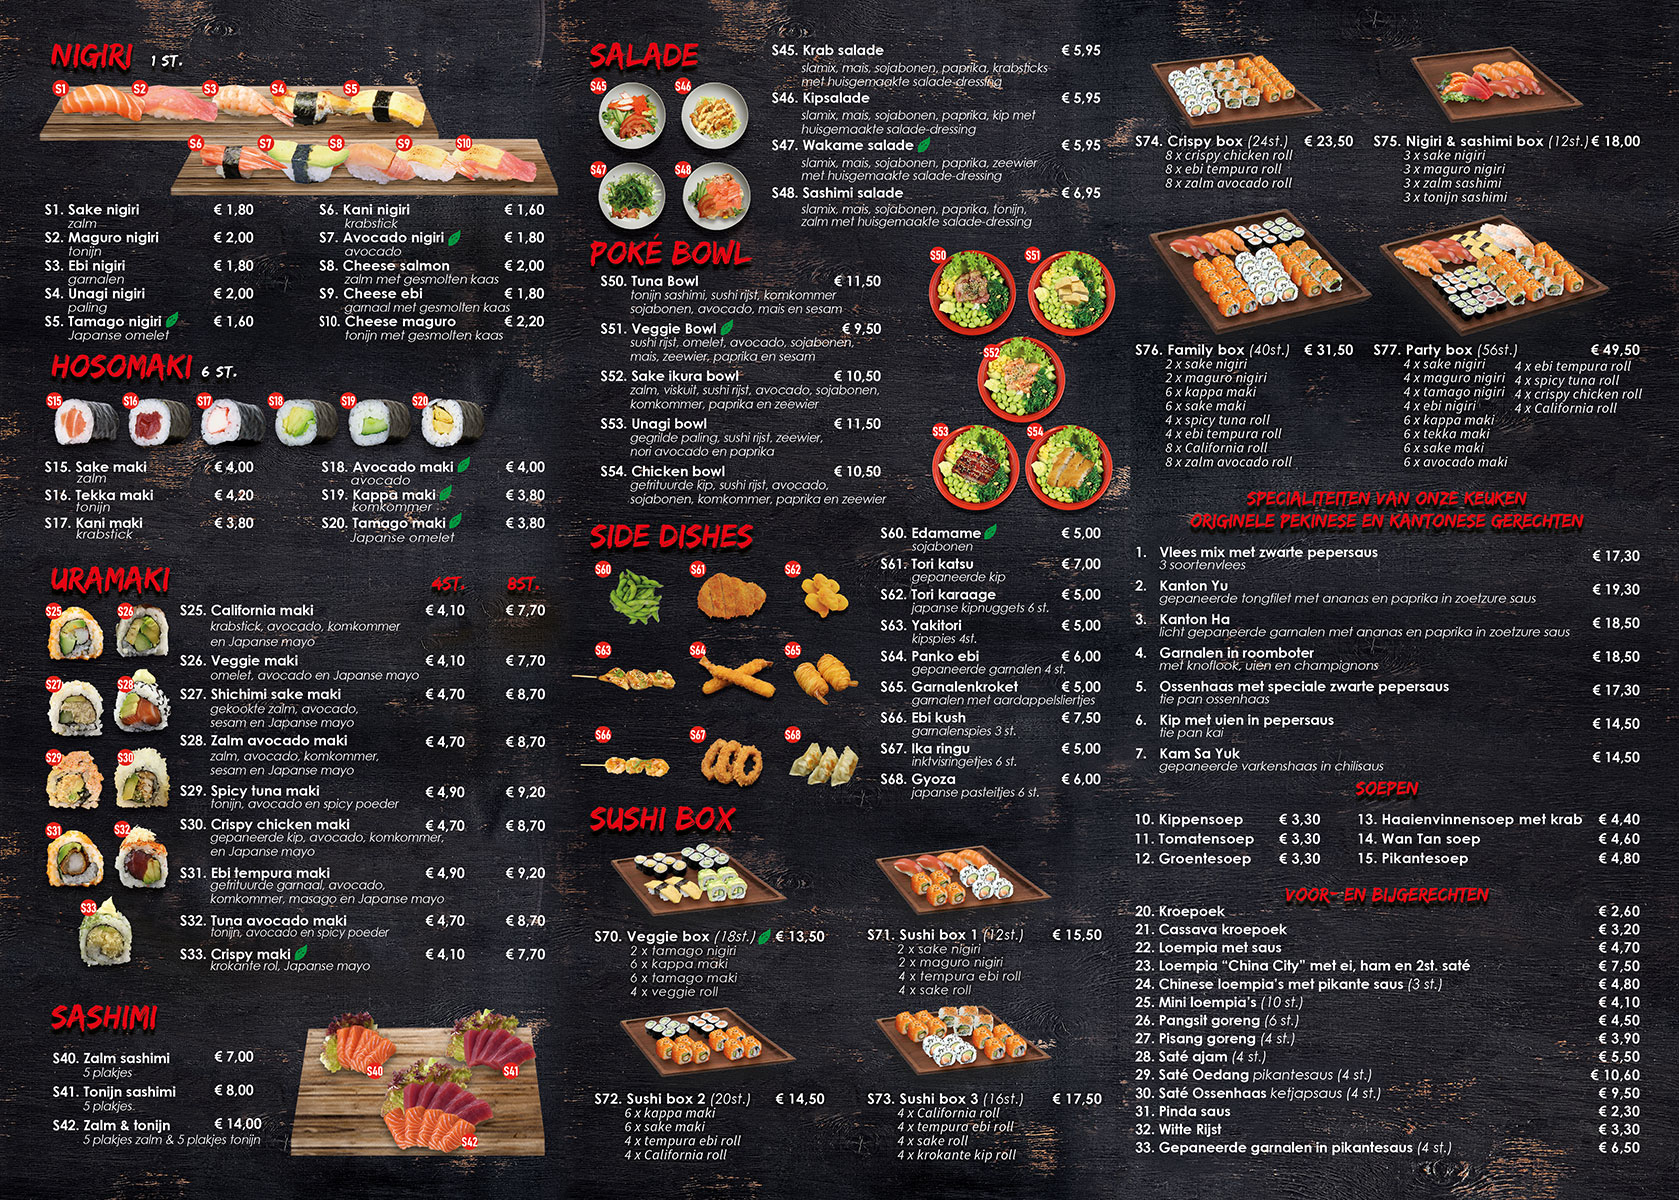 china-city-wok-grill-sushi-all-you-can-eat-dordrecht-afhaal-menu-12